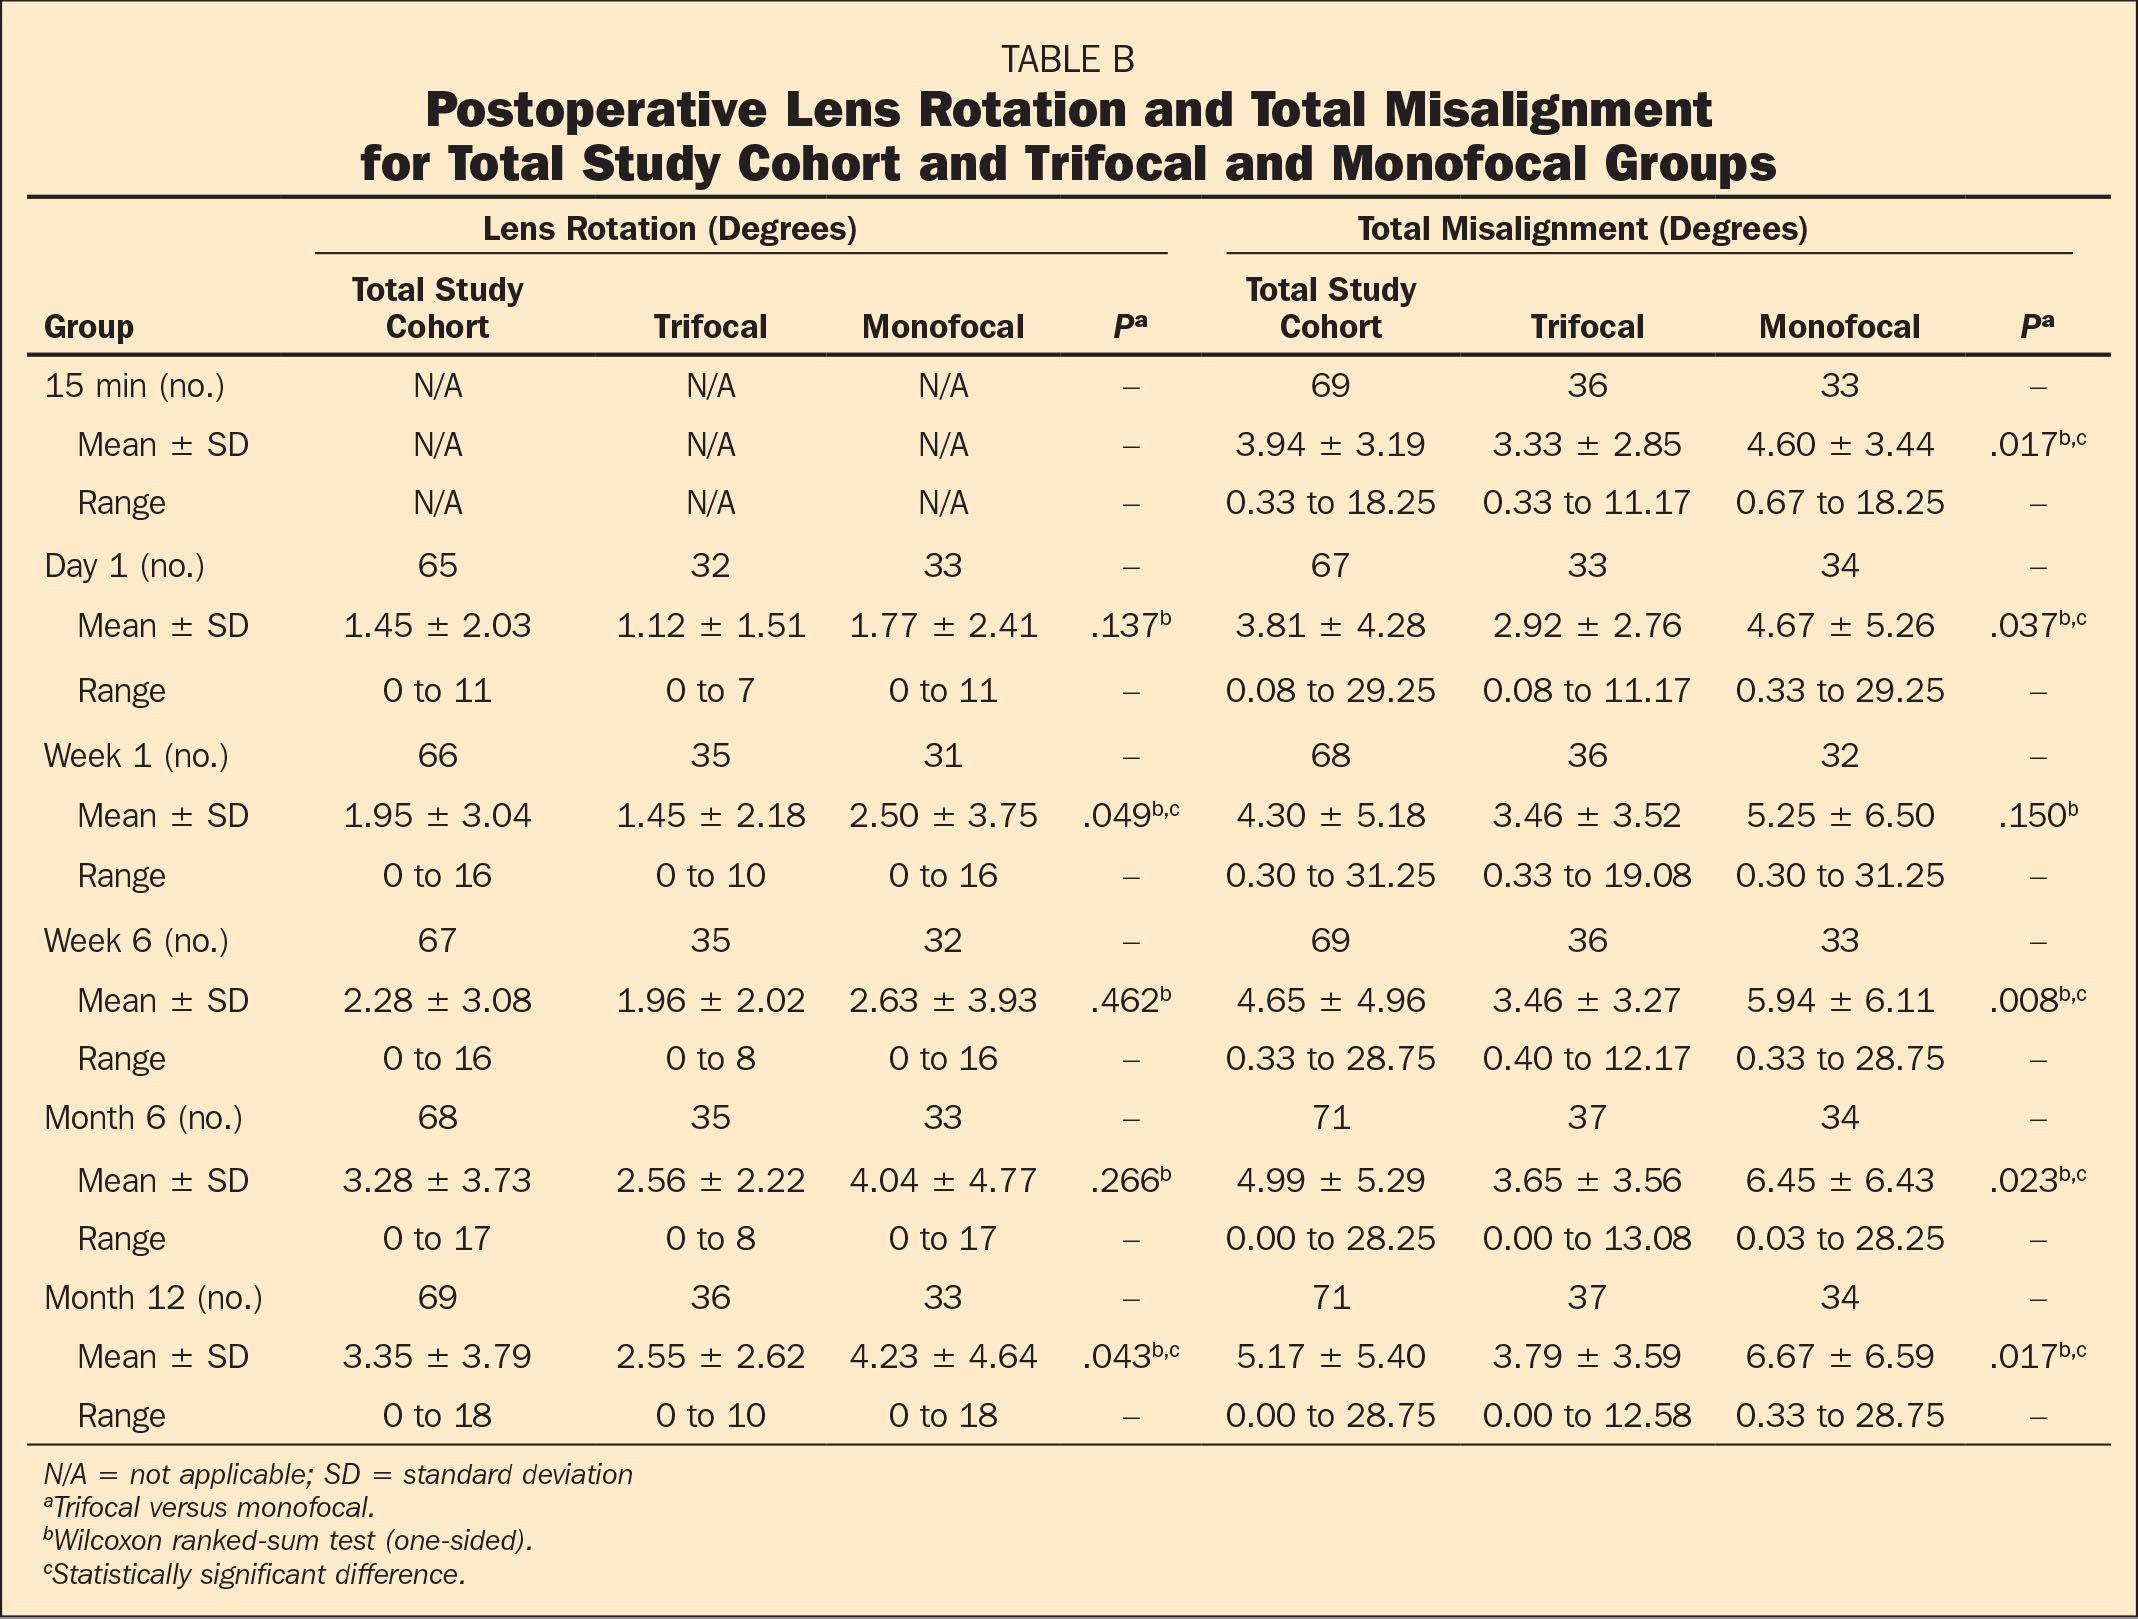 Postoperative Lens Rotation and Total Misalignment for Total Study Cohort and Trifocal and Monofocal Groups